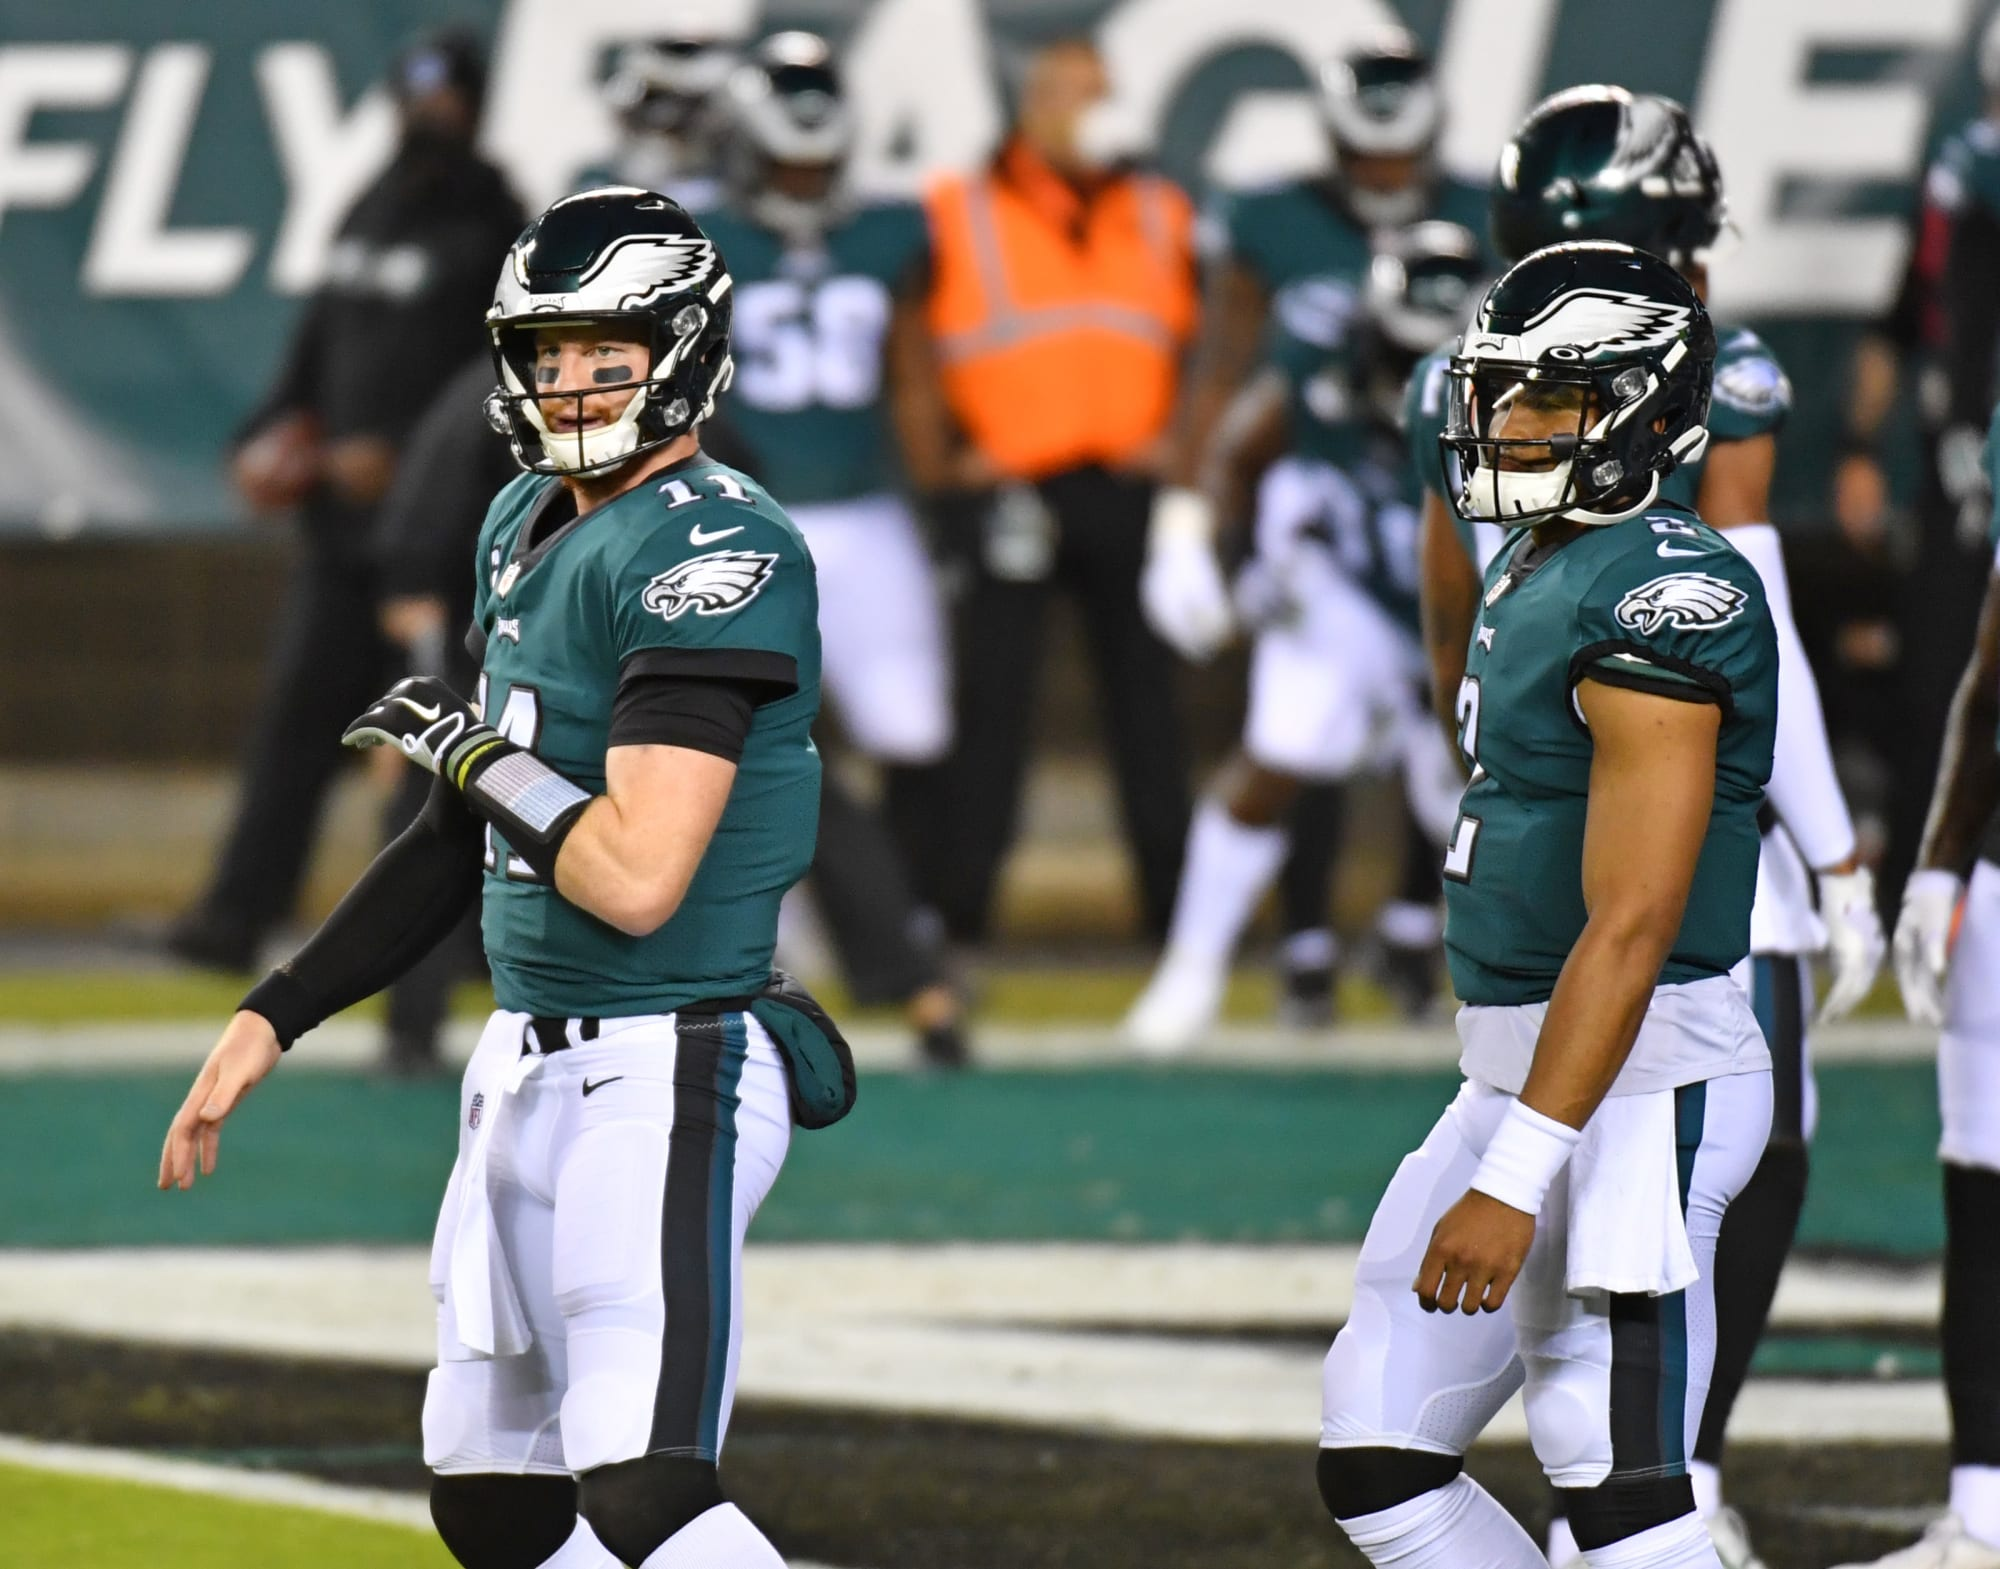 Twitter rips Carson Wentz for hilariously tragic play